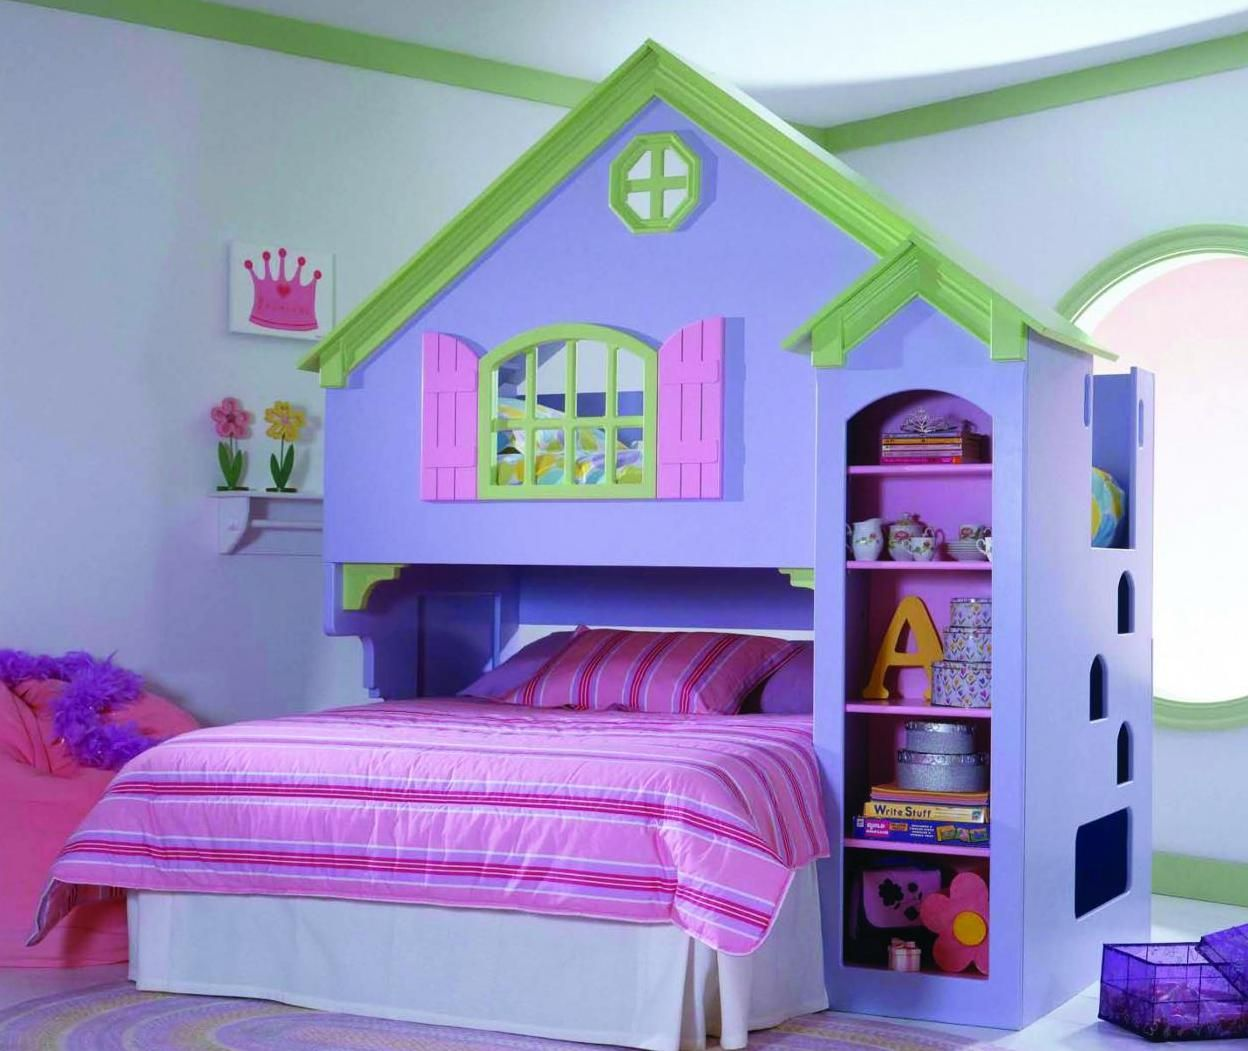 Lovely Attractive Kids Bedroom Sets Style Visualized With House Shaped Bed And  Pink Bean Bag Couch